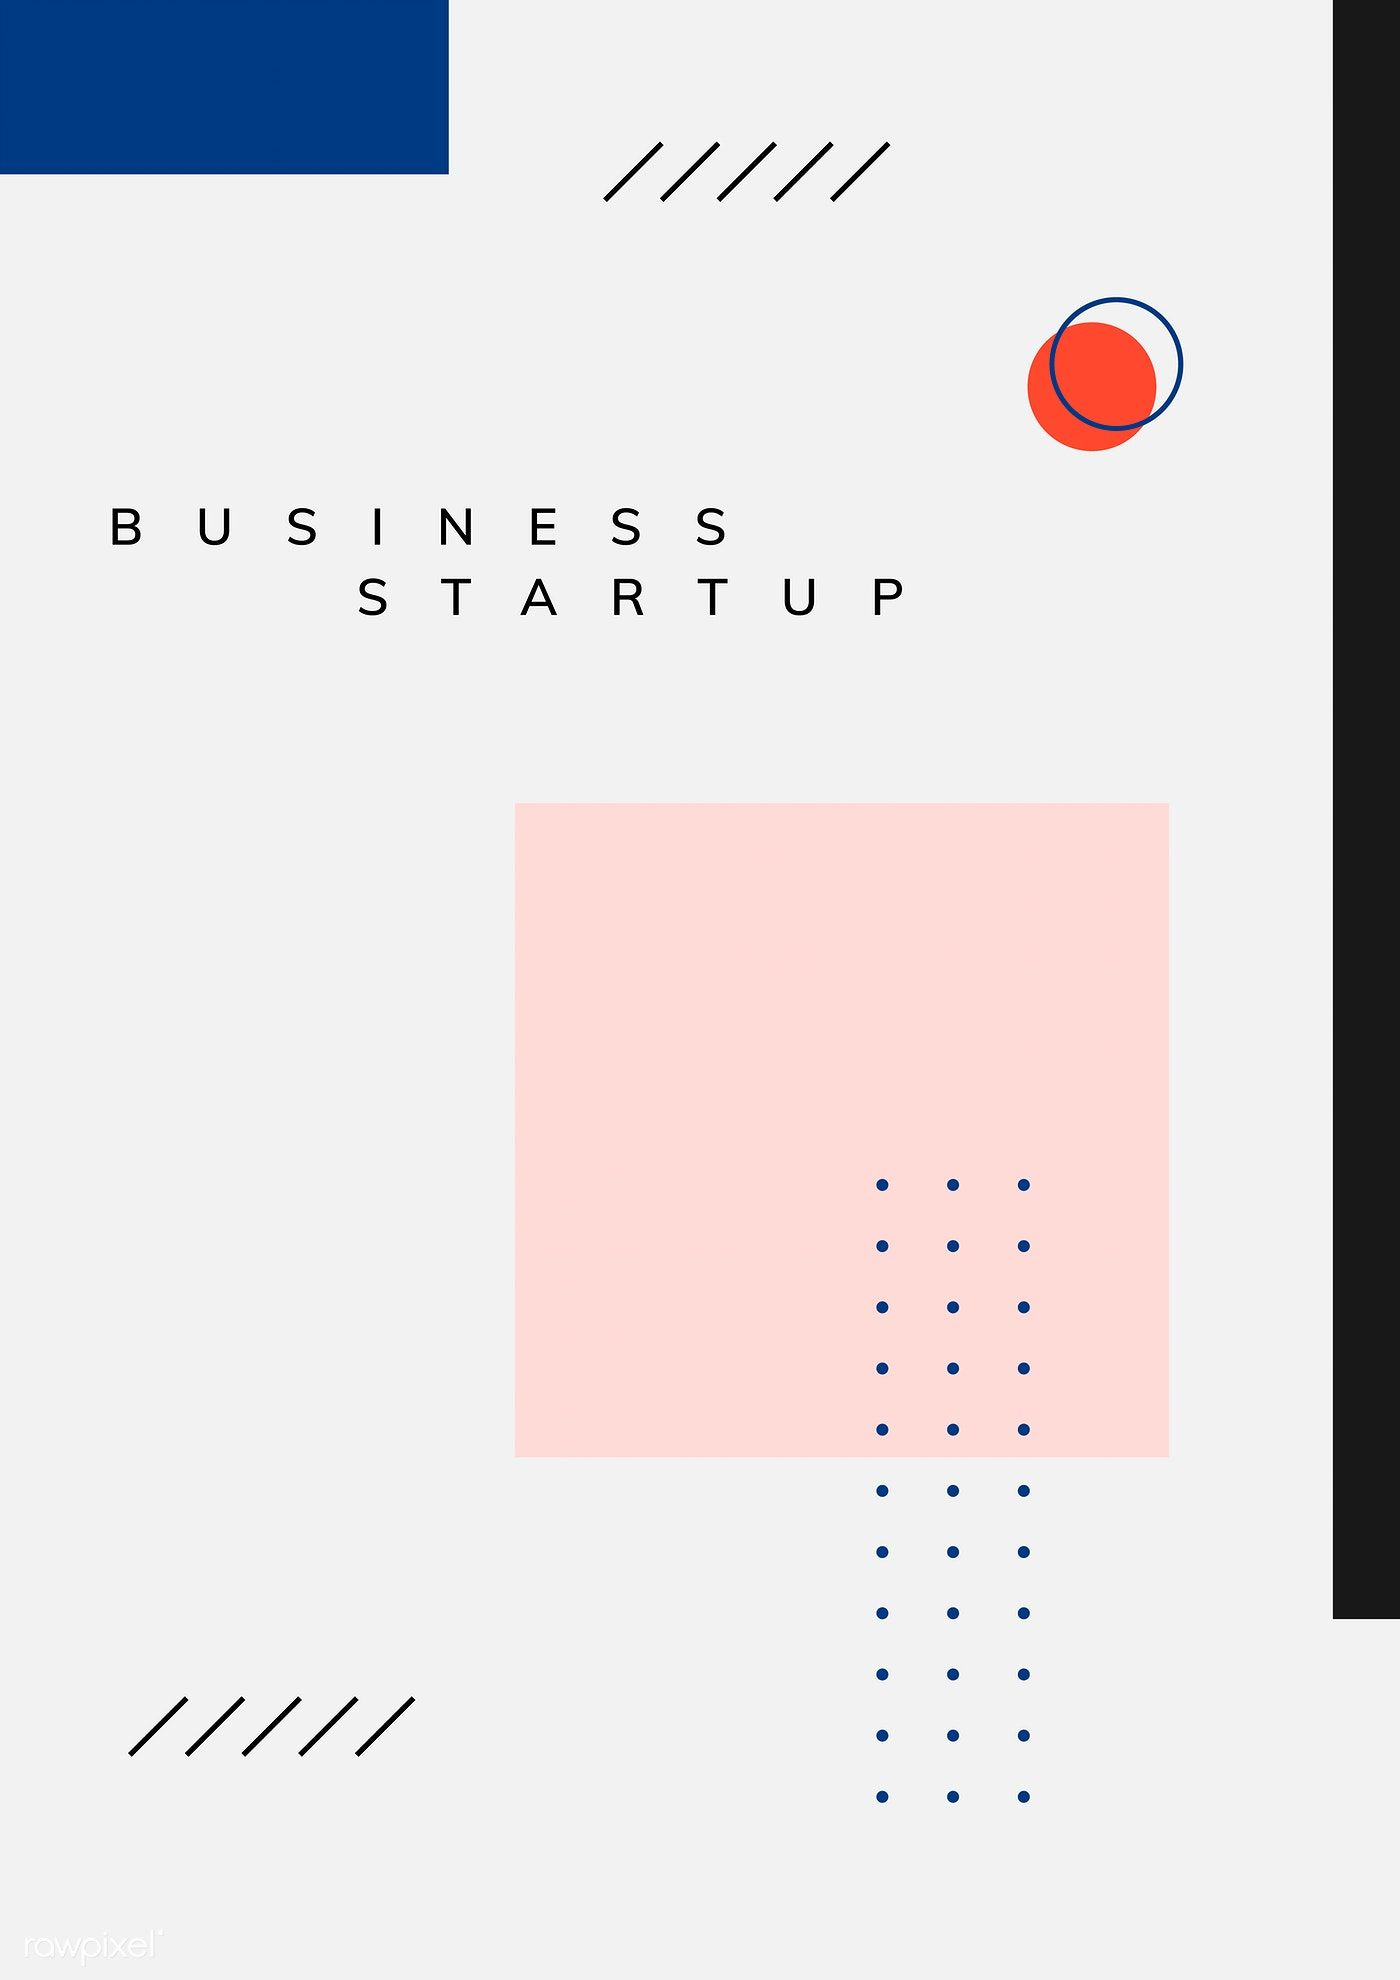 Minimal Memphis business start-up poster vector | free image by rawpixel.com / Kappy Kappy #memphisdesign